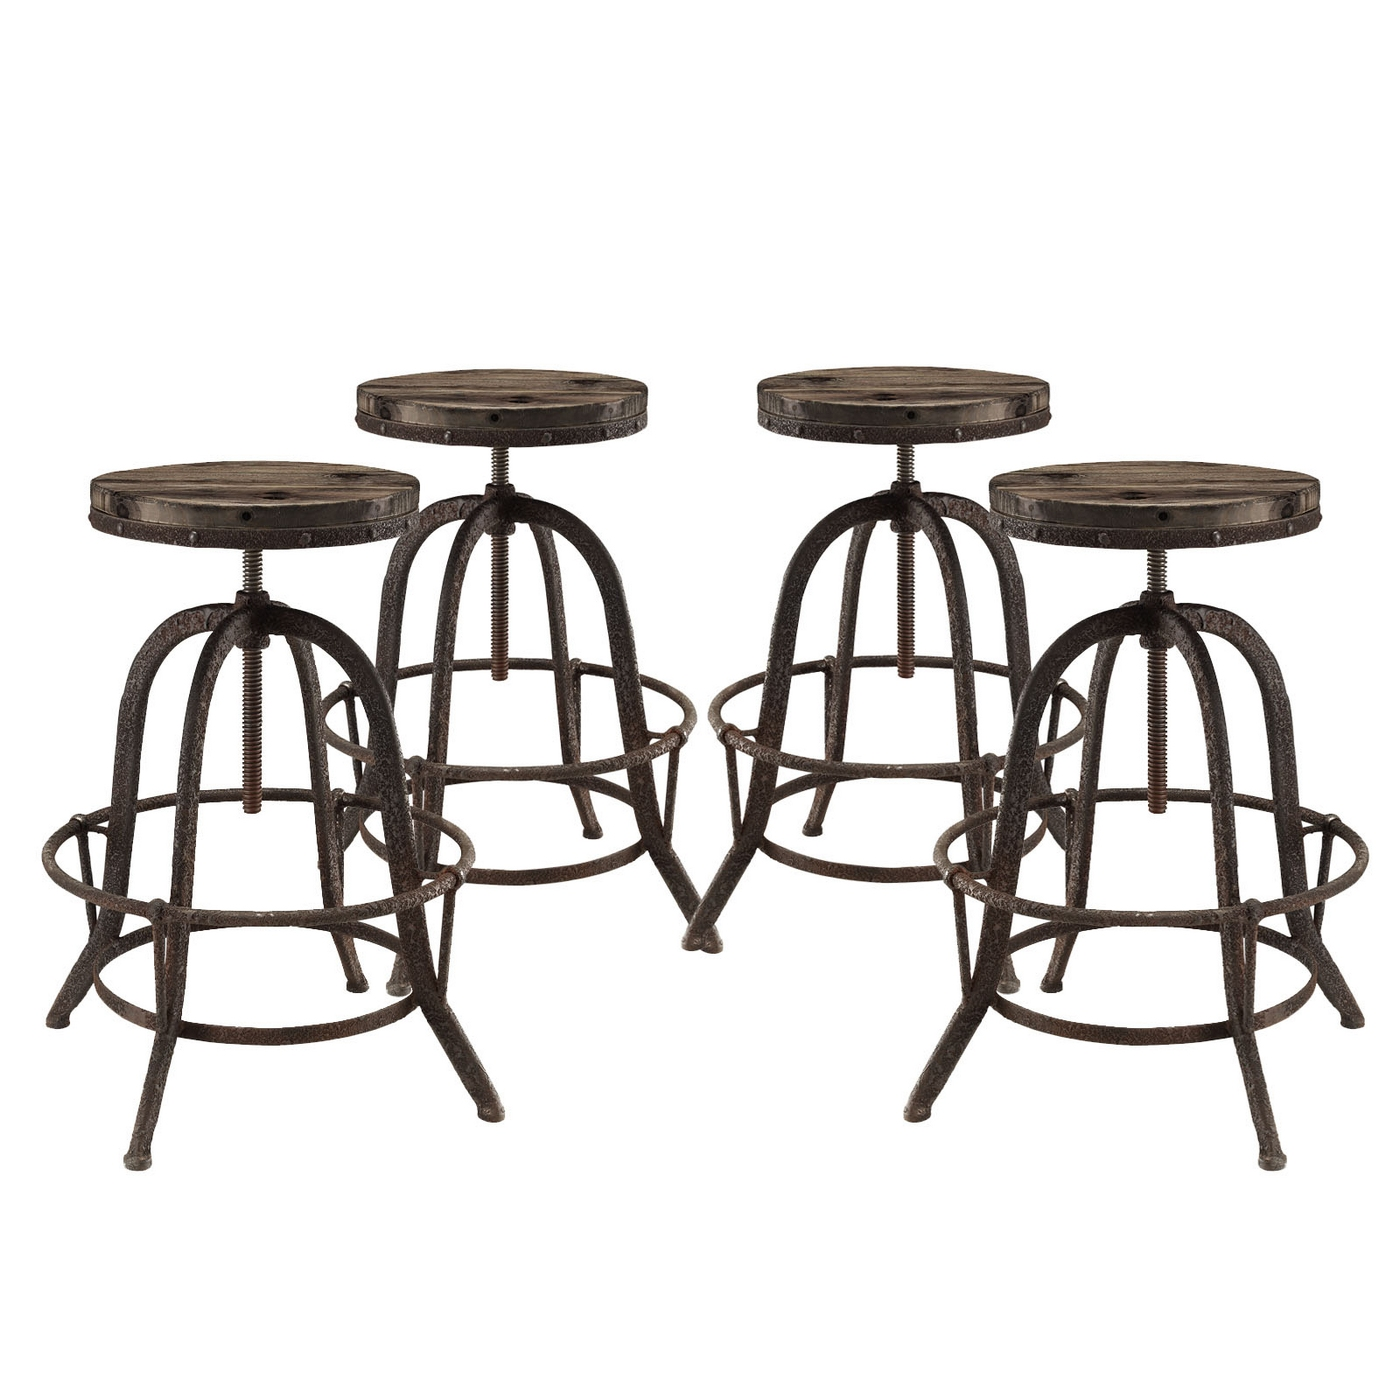 Set Of 4 Collect Industrial Bar Stool Wwood Seat amp Cast  : set of 4 collect industrial bar stool w wood seat cast iron frame brown 1 from shopfactorydirect.com size 1400 x 1400 jpeg 403kB